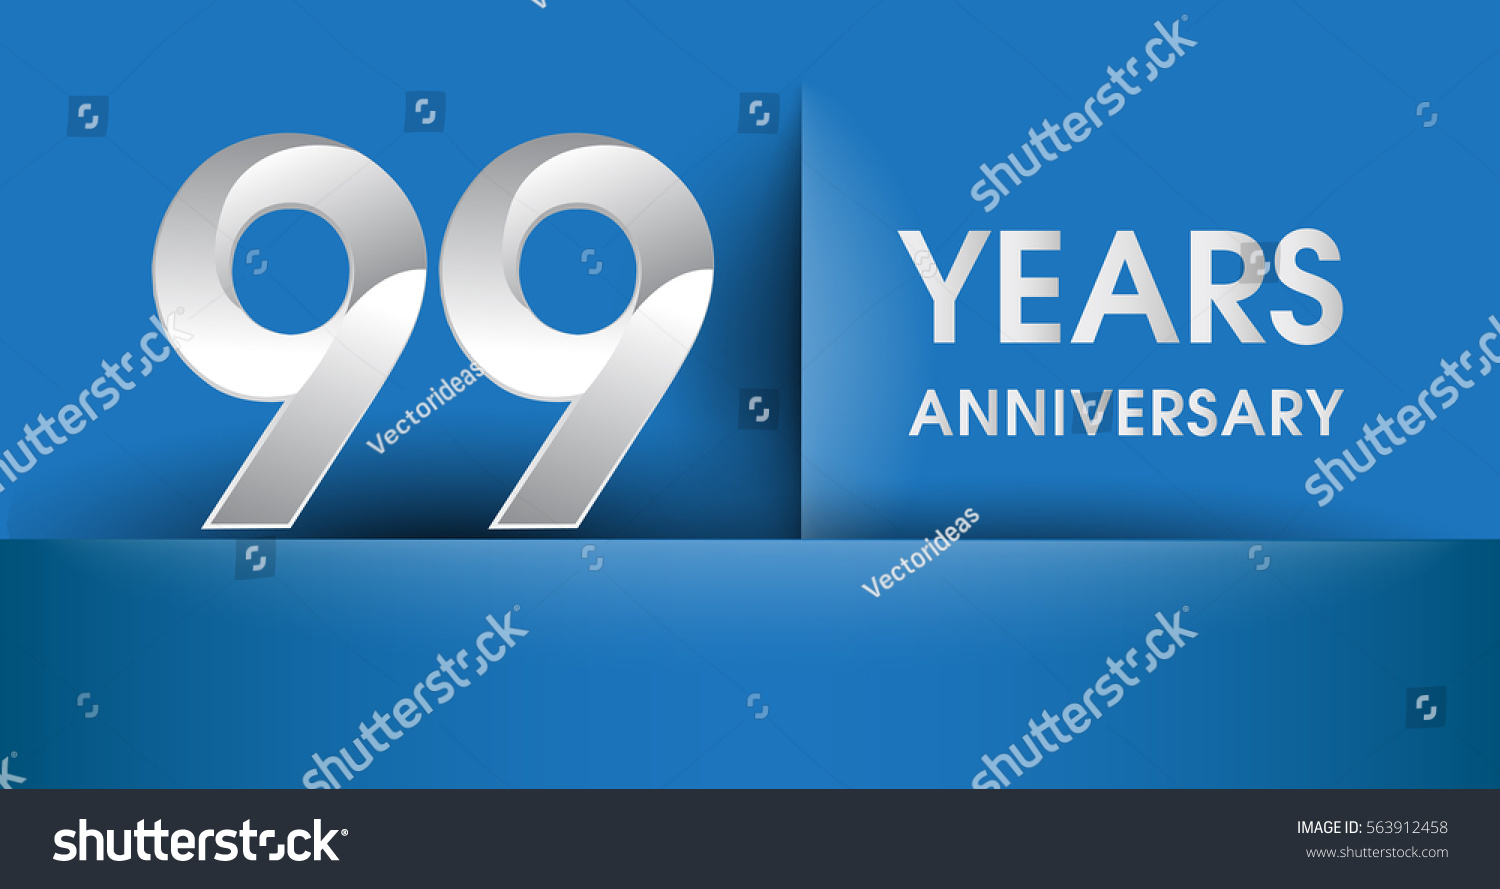 99 years anniversary celebration logo flat stock vector 563912458 99 years anniversary celebration logo flat design isolated on blue background vector elements for stopboris Image collections